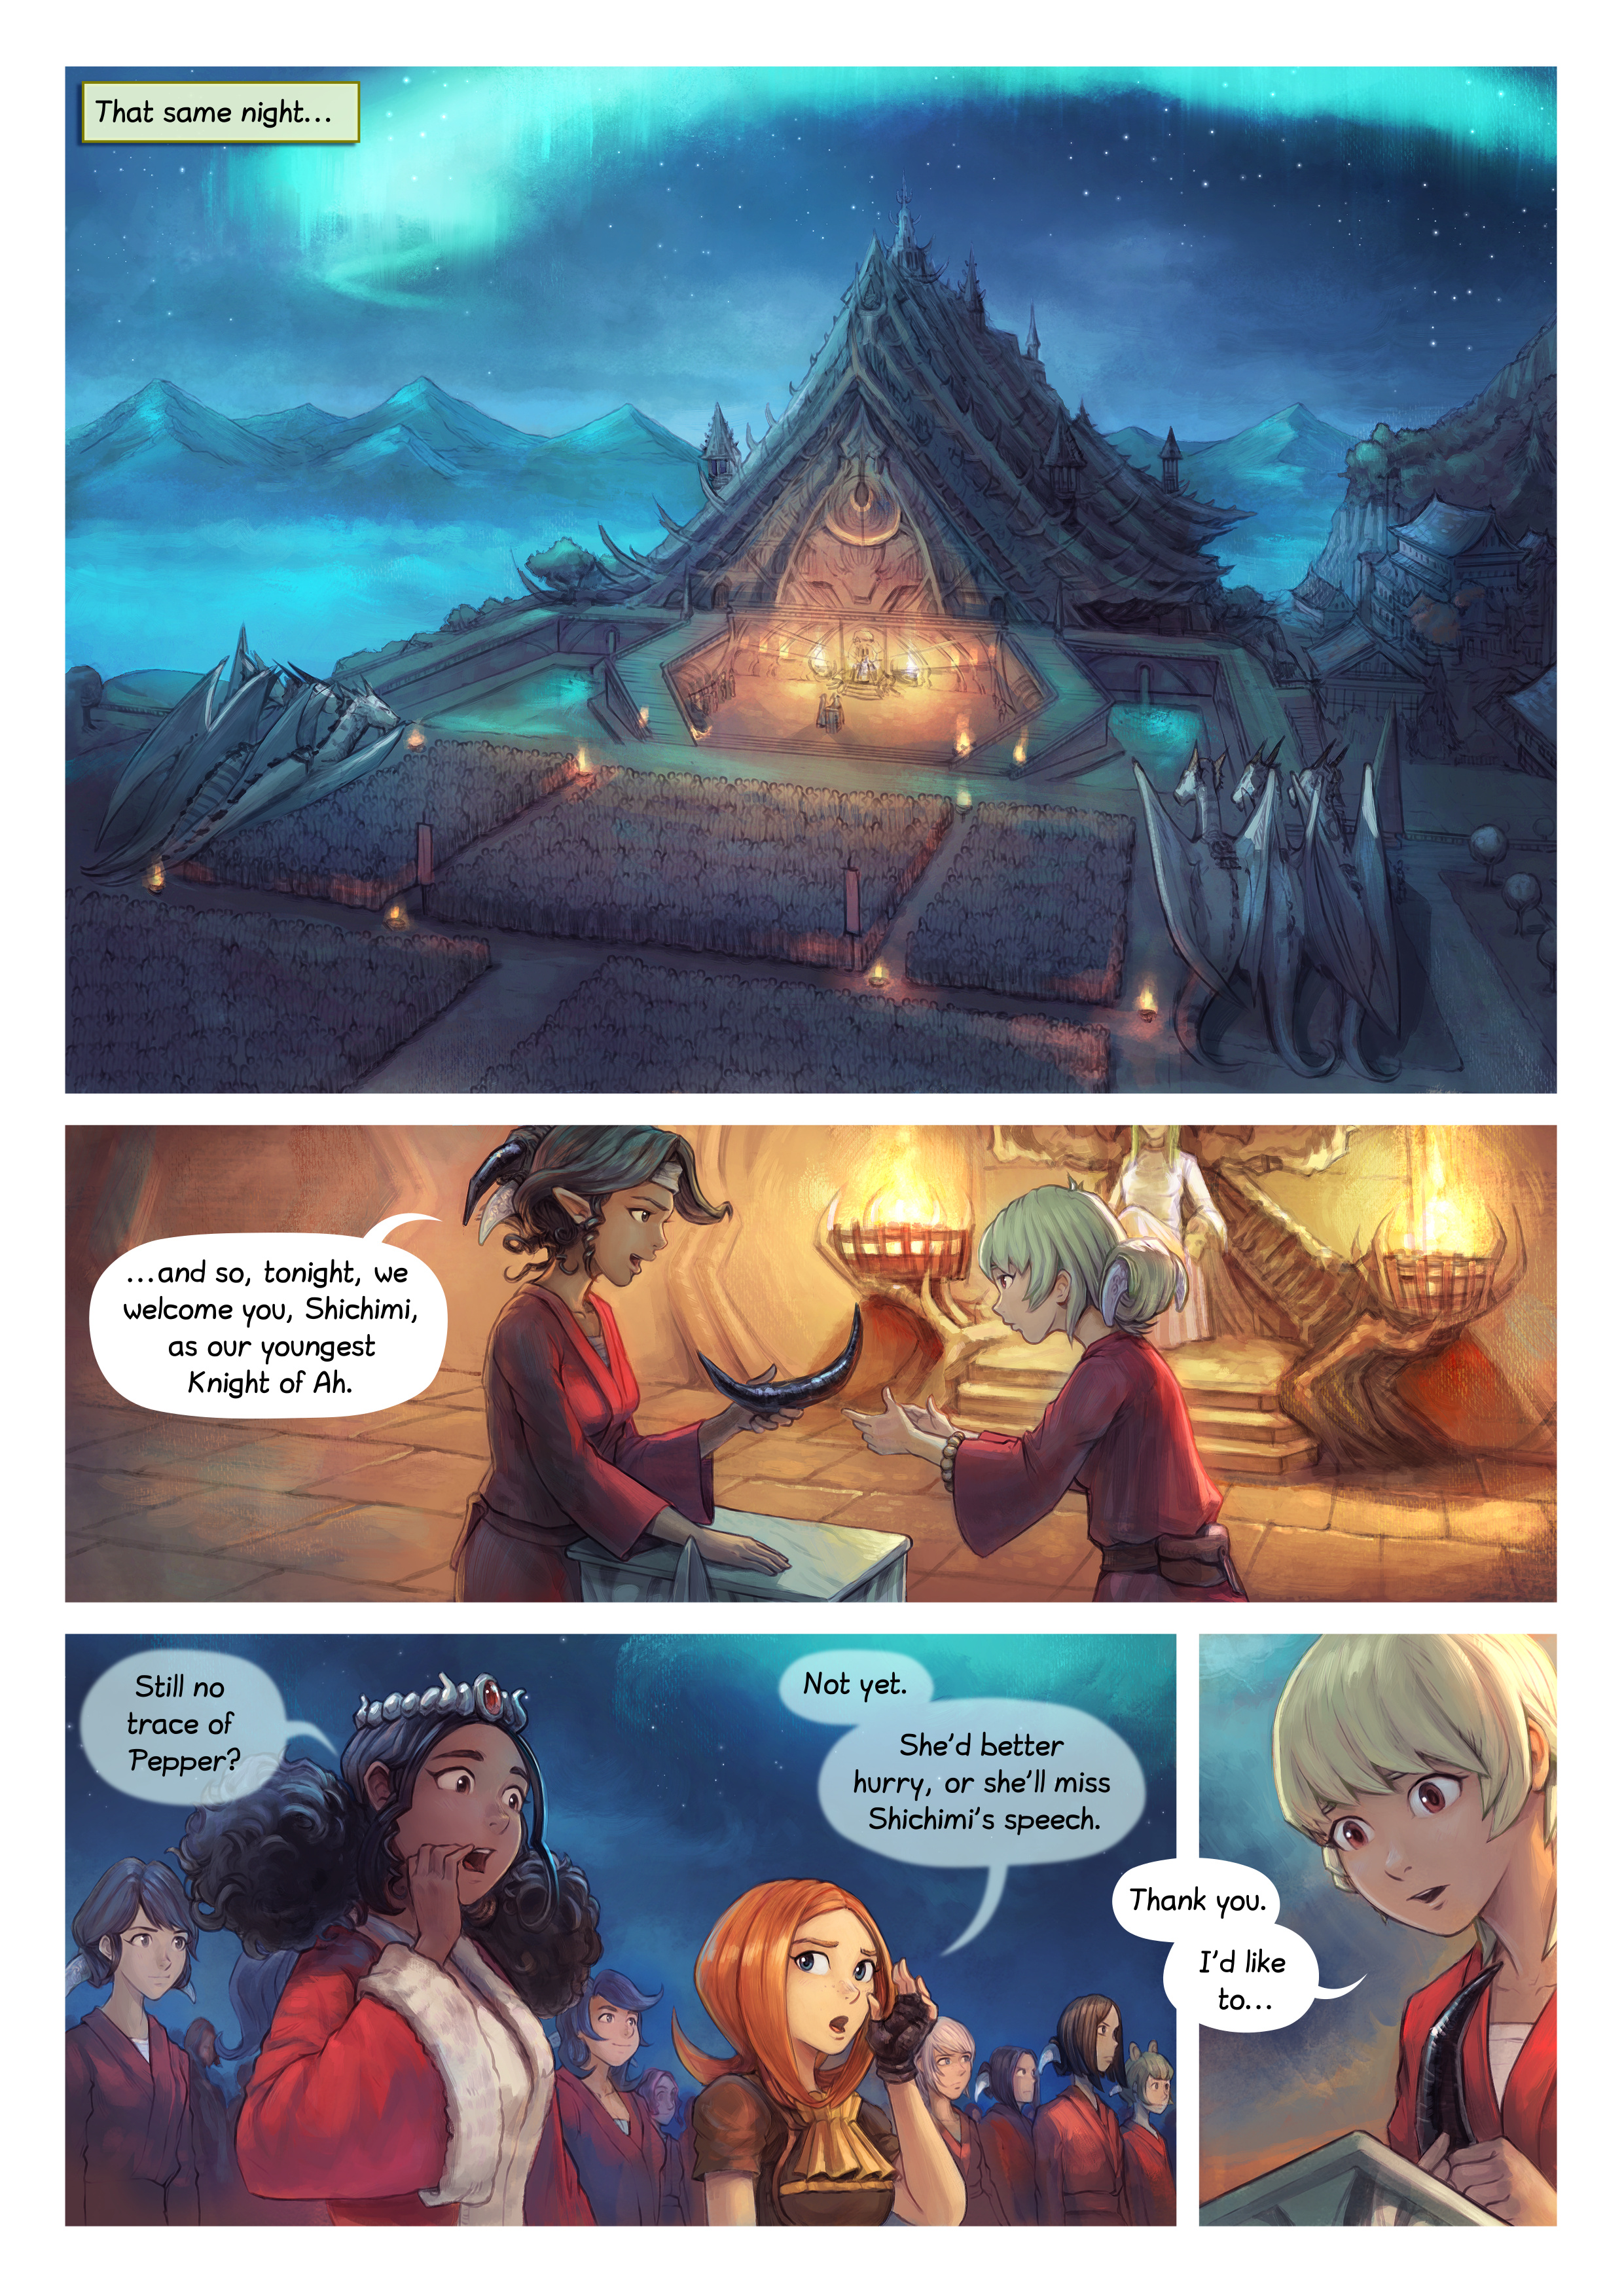 Episode 34: The Knighting of Shichimi, Page 1